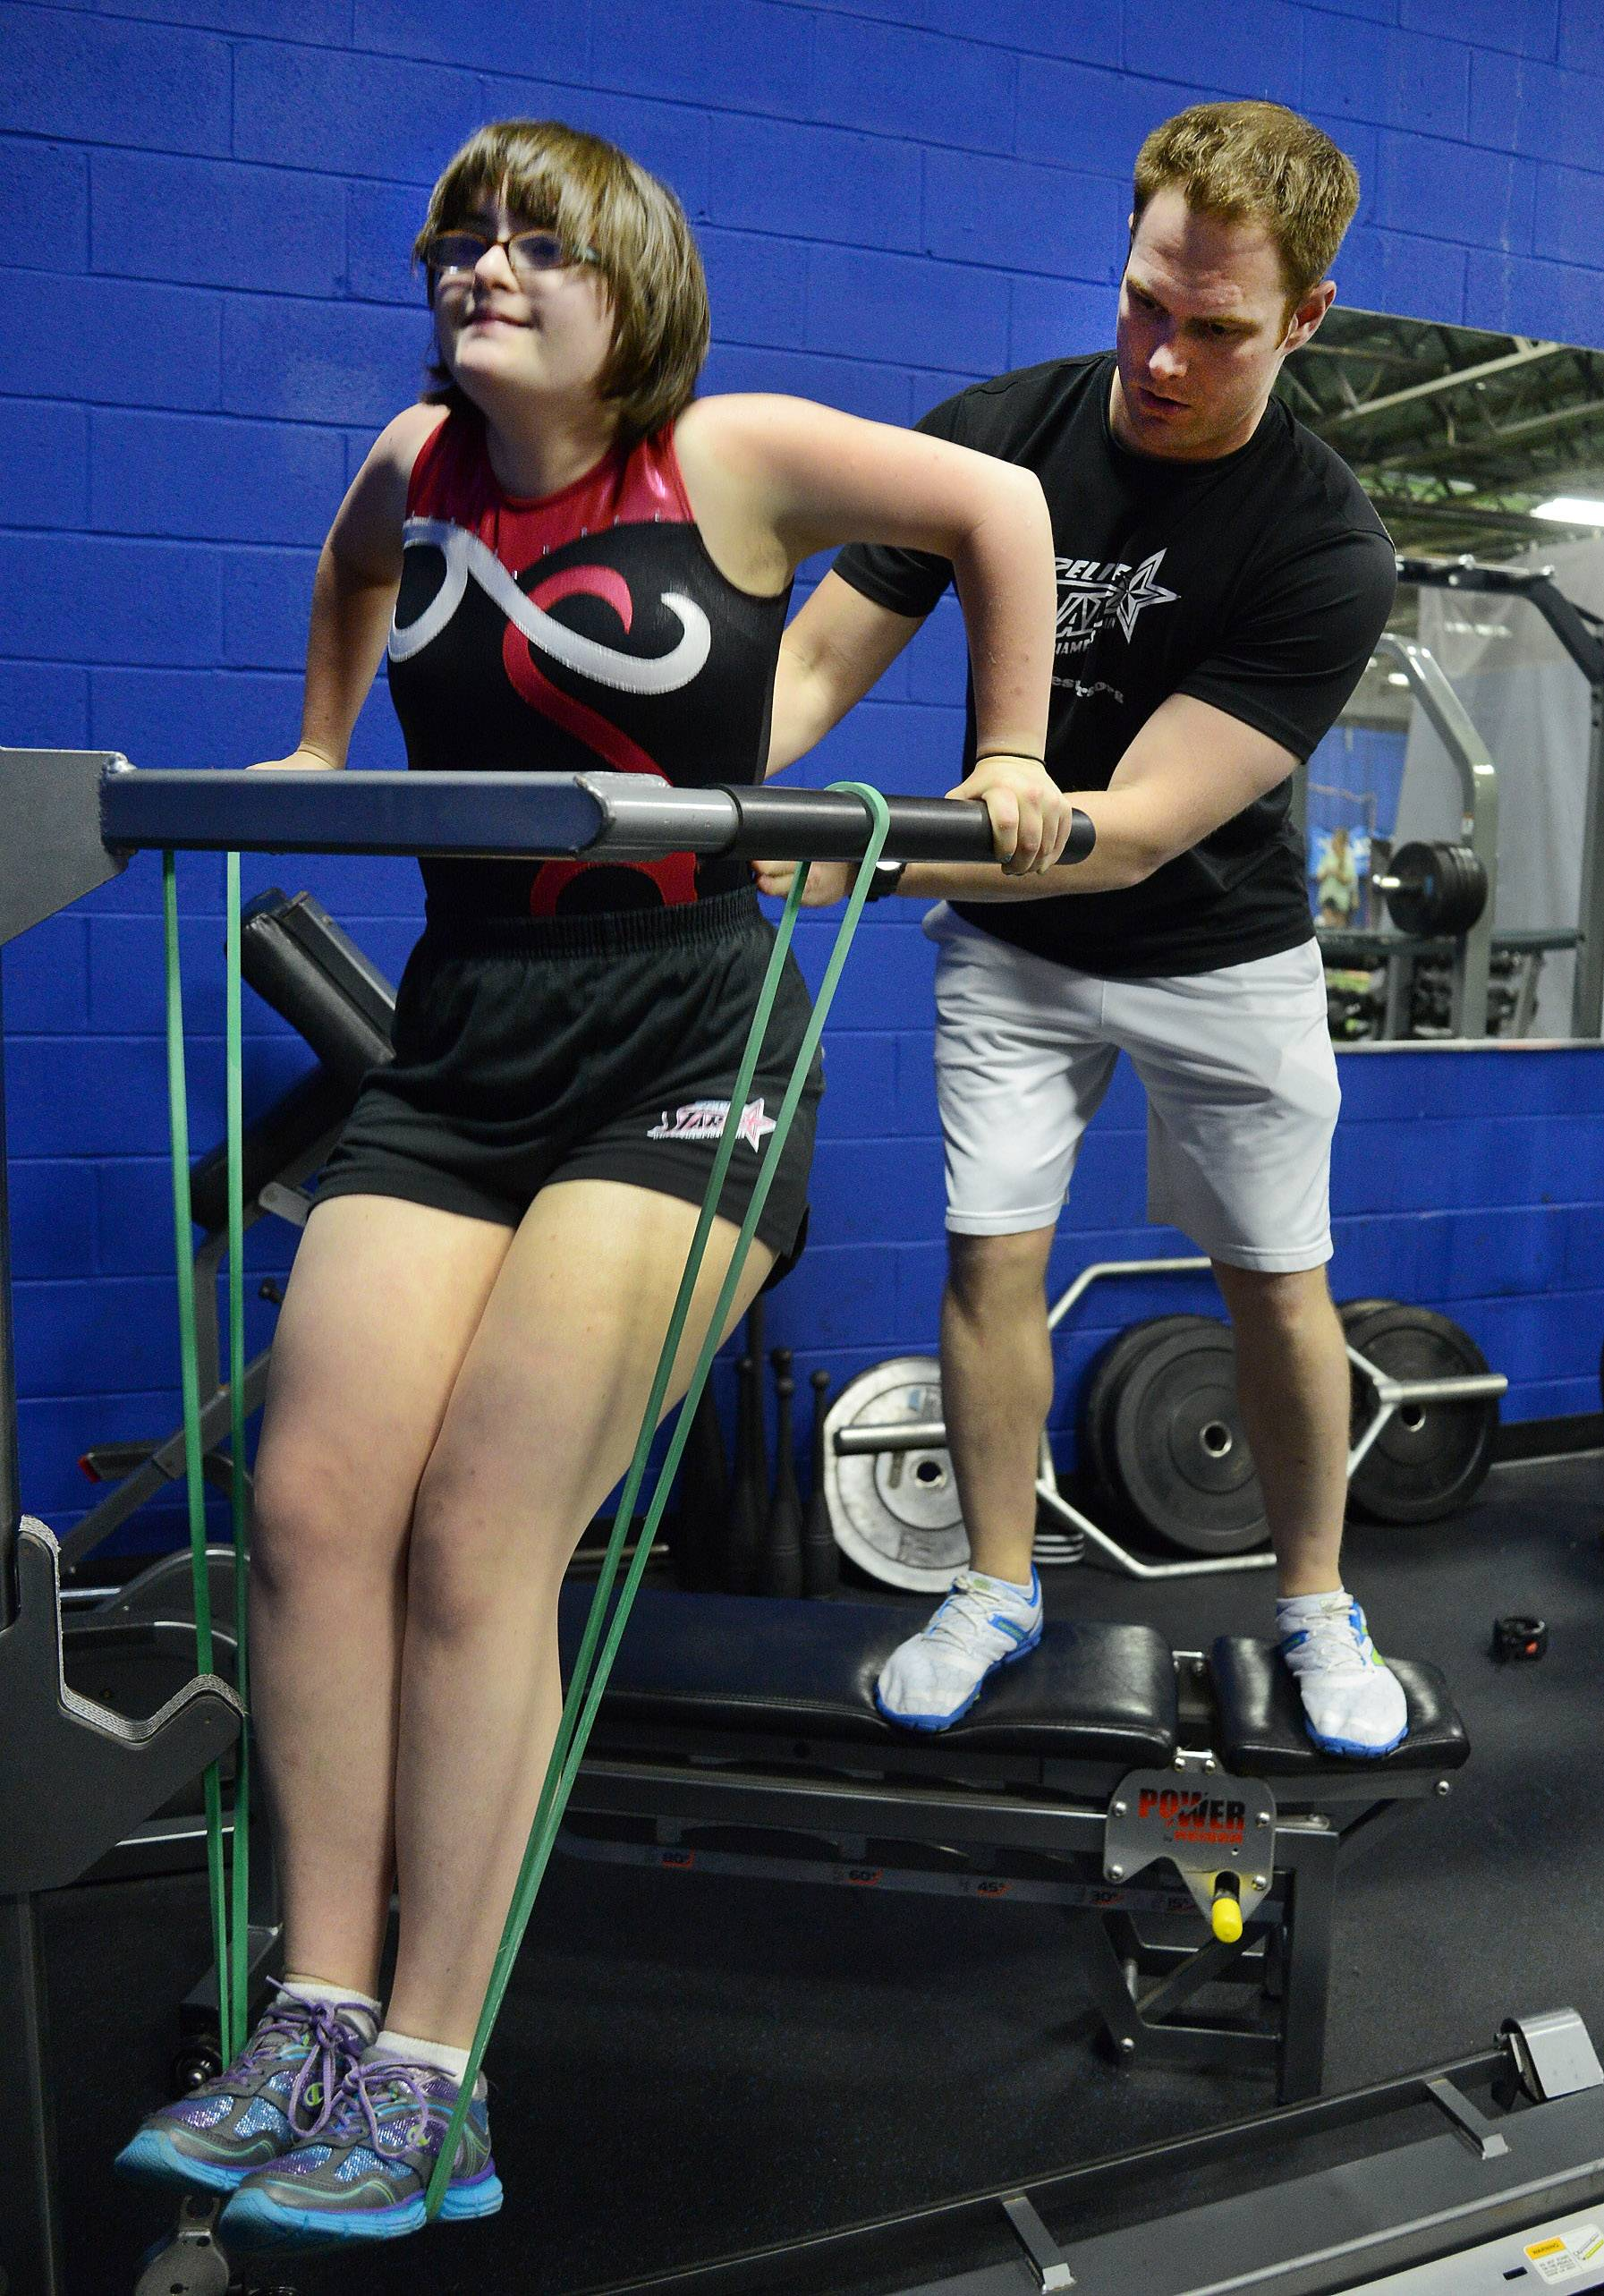 Gymnast Karlee Darow works with Jason Domnanovich, director of sports performance for The Academy of Athletic Advancement in Mount Prospect, while preparing for the upcoming Special Olympics 2014 USA Games in New Jersey.